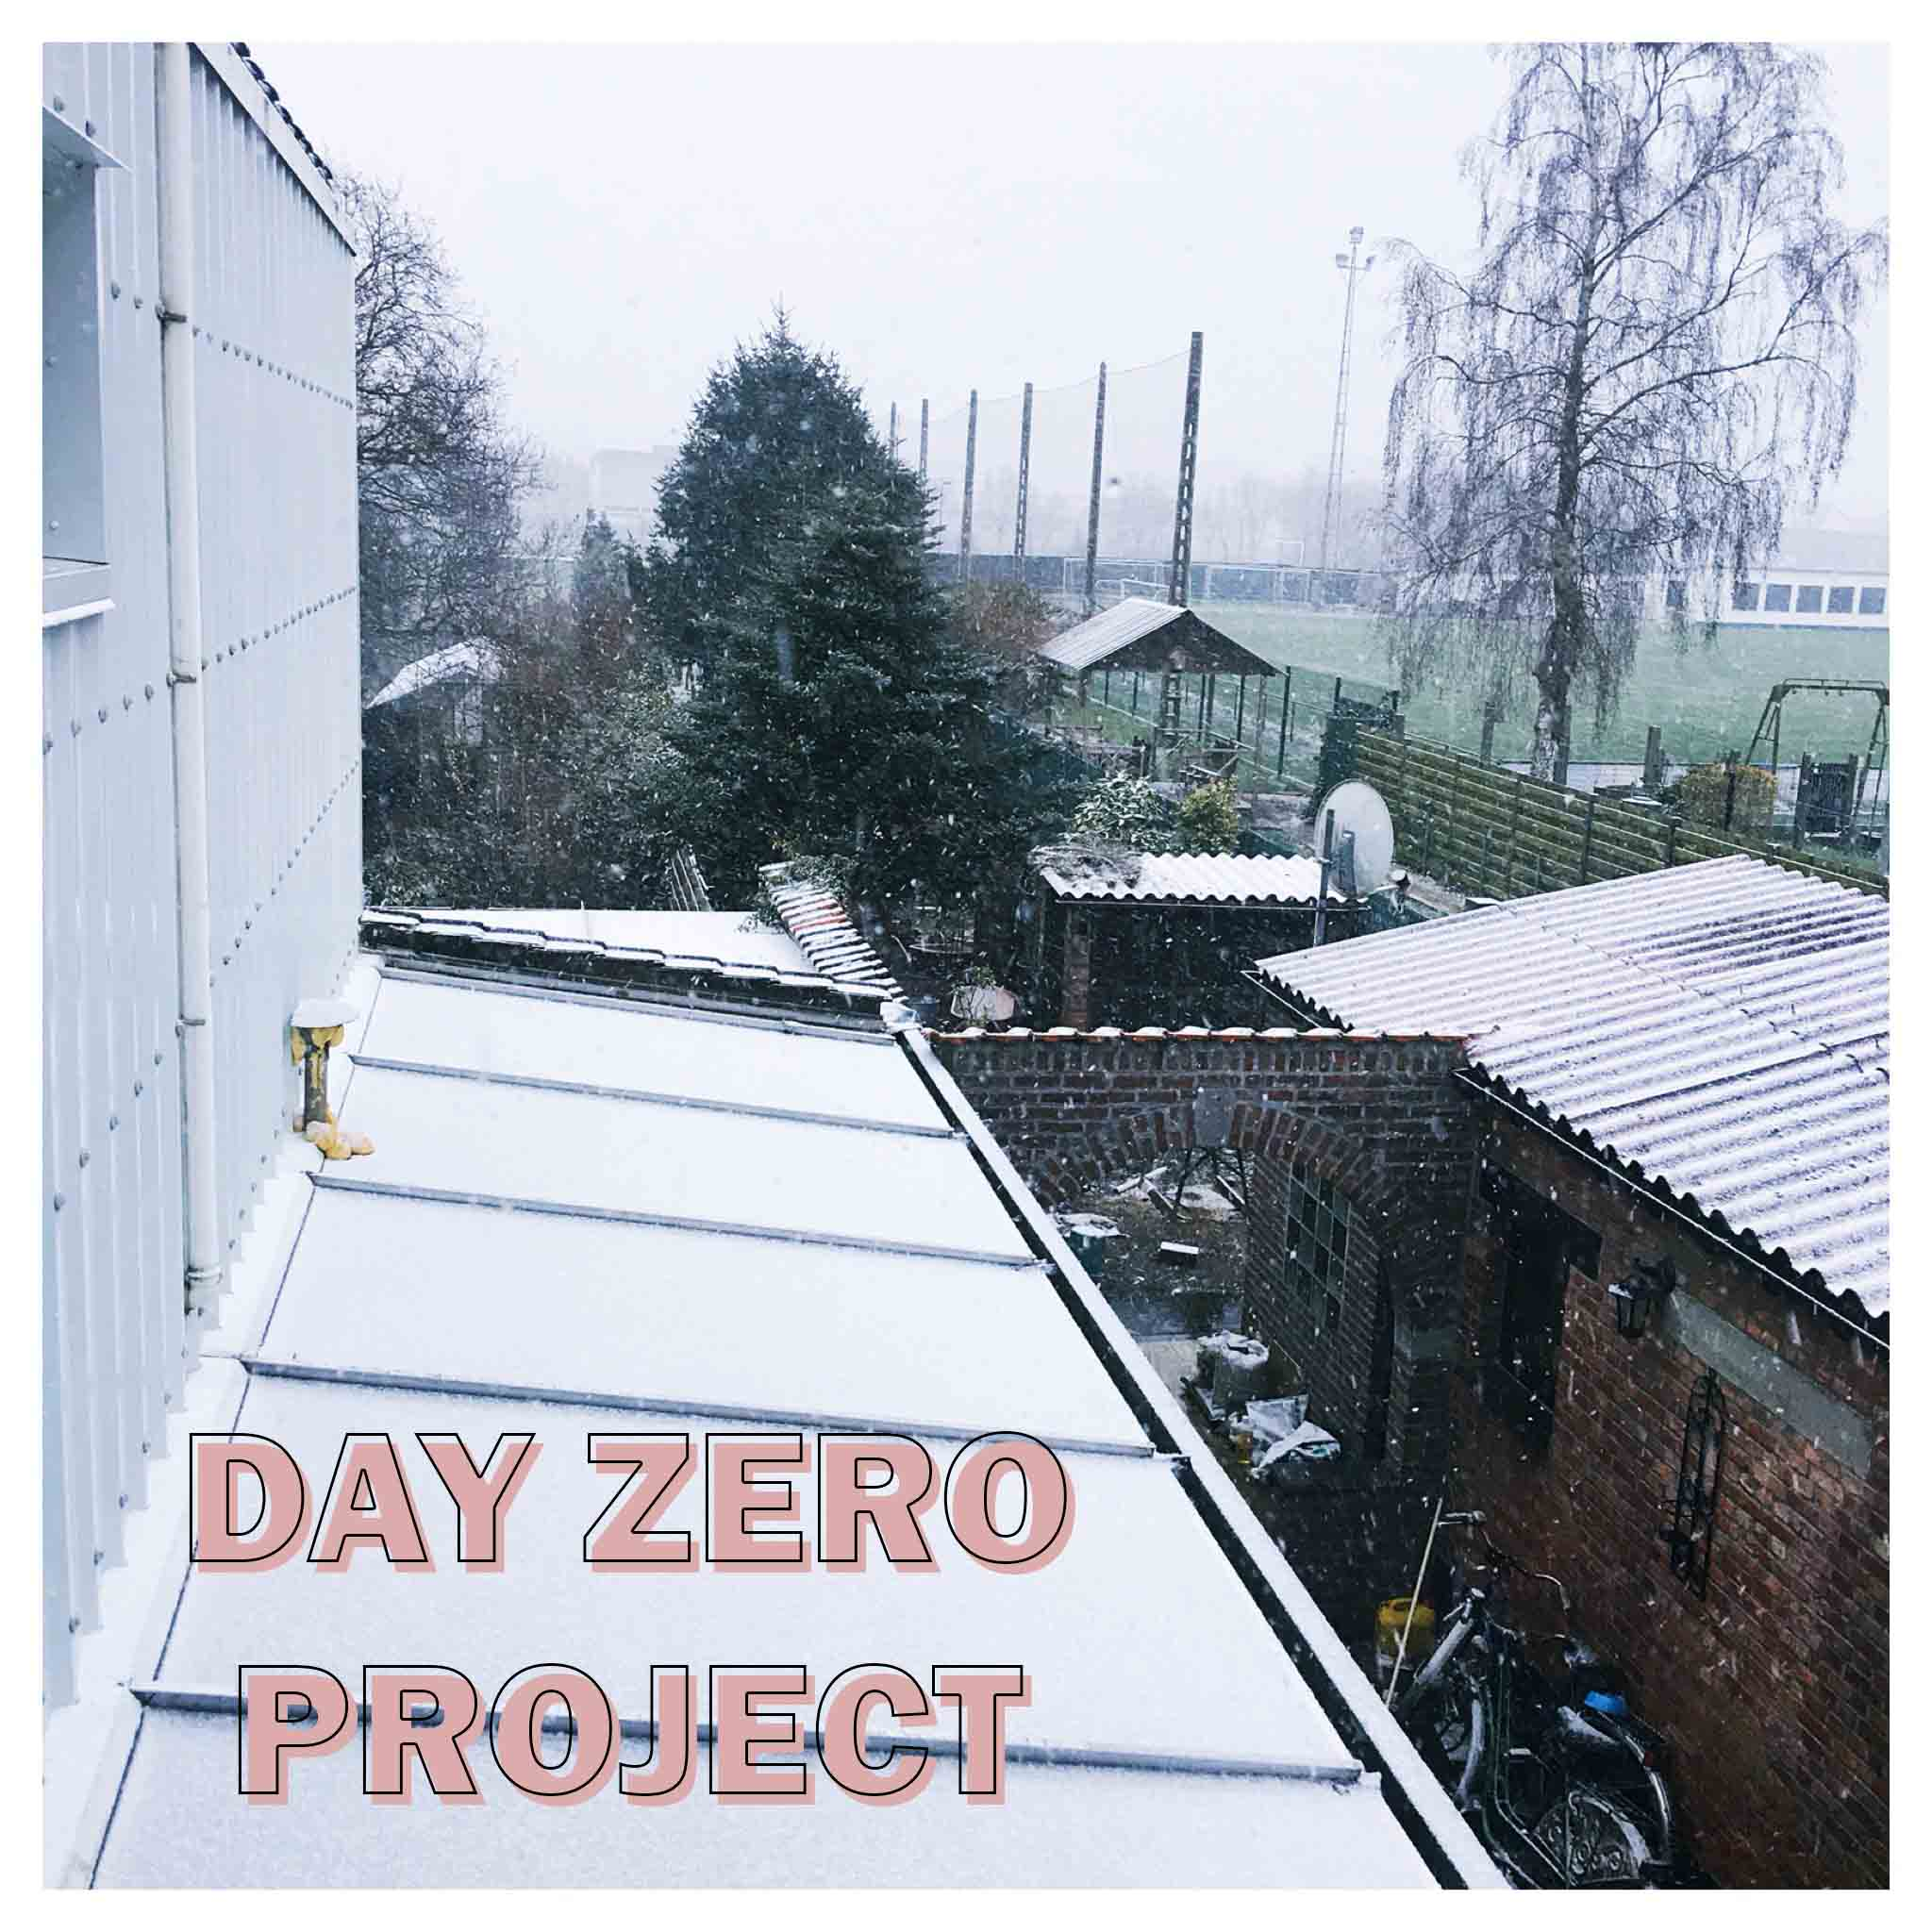 Day zero project | Update 2